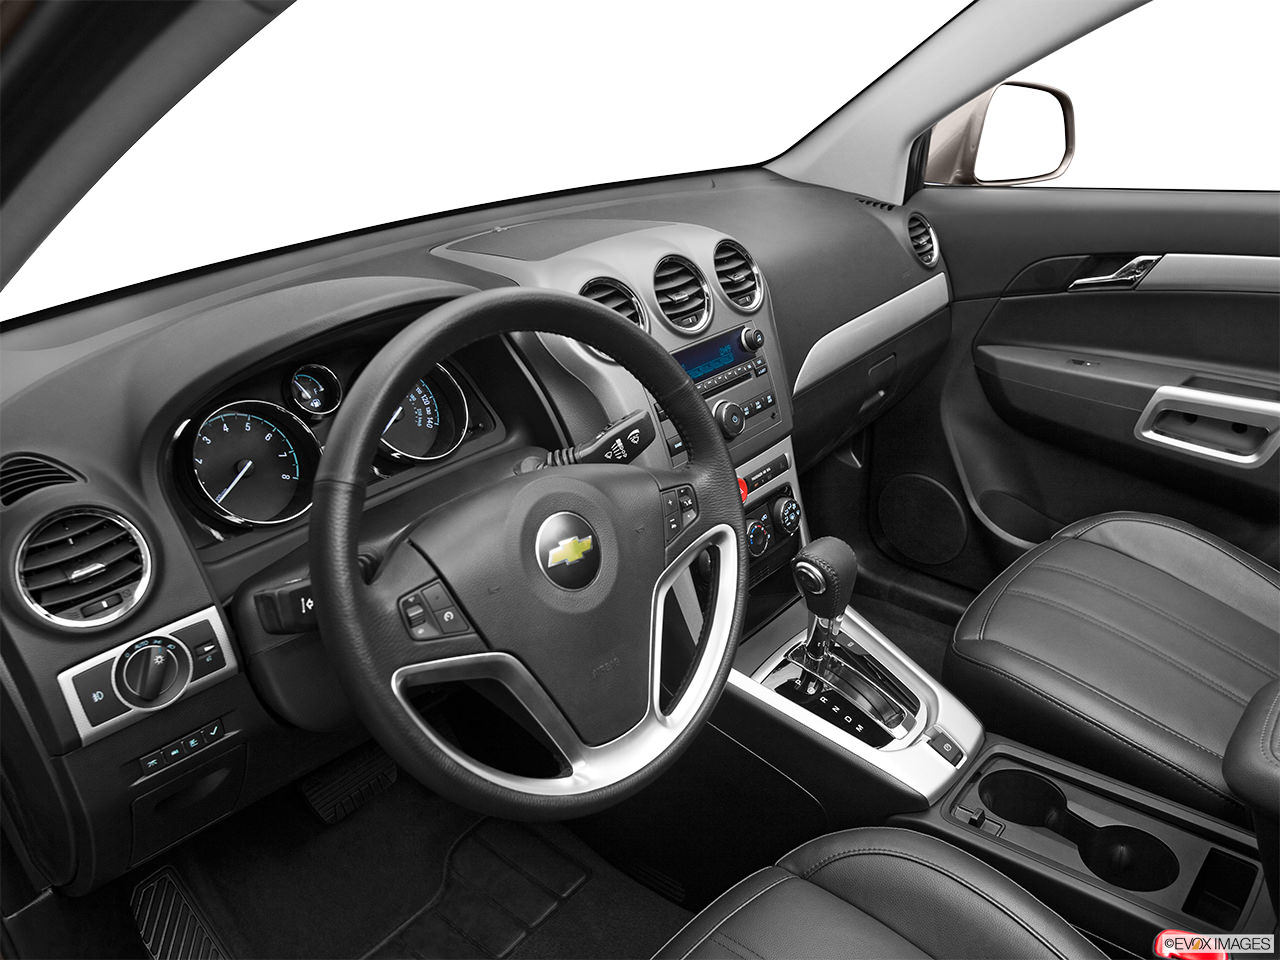 Chevrolet Captiva Sport 2012 Interior